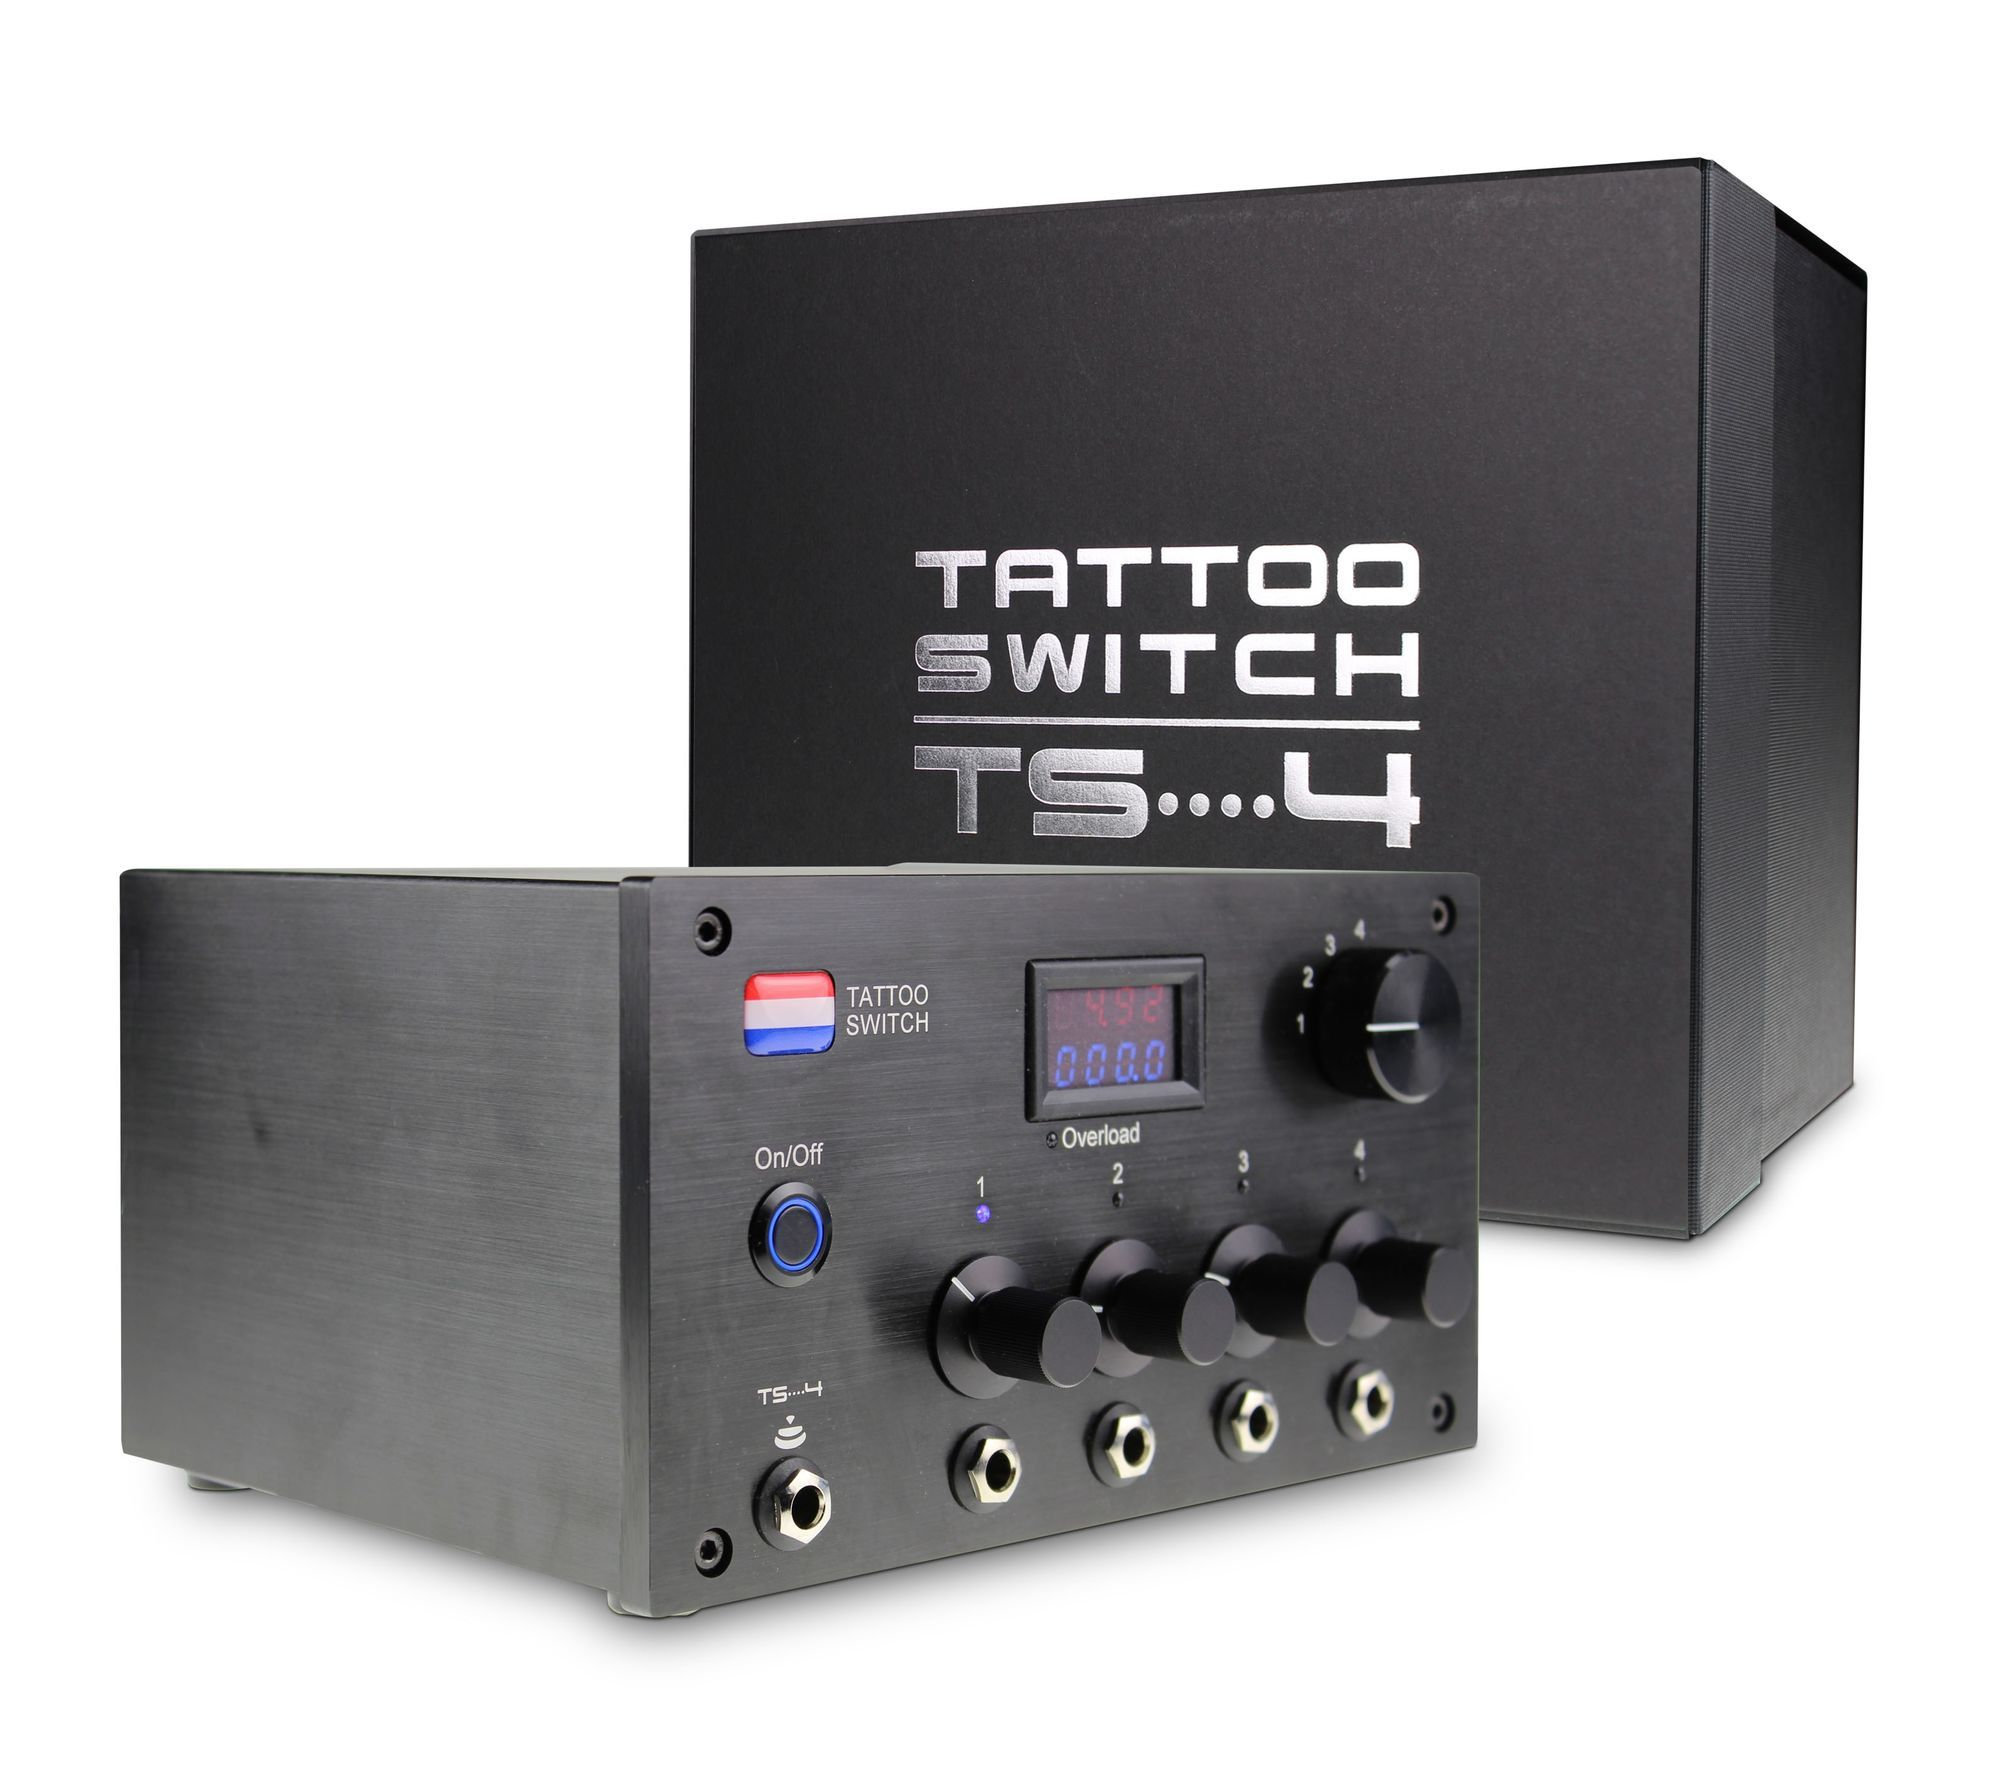 Tattoo Switch